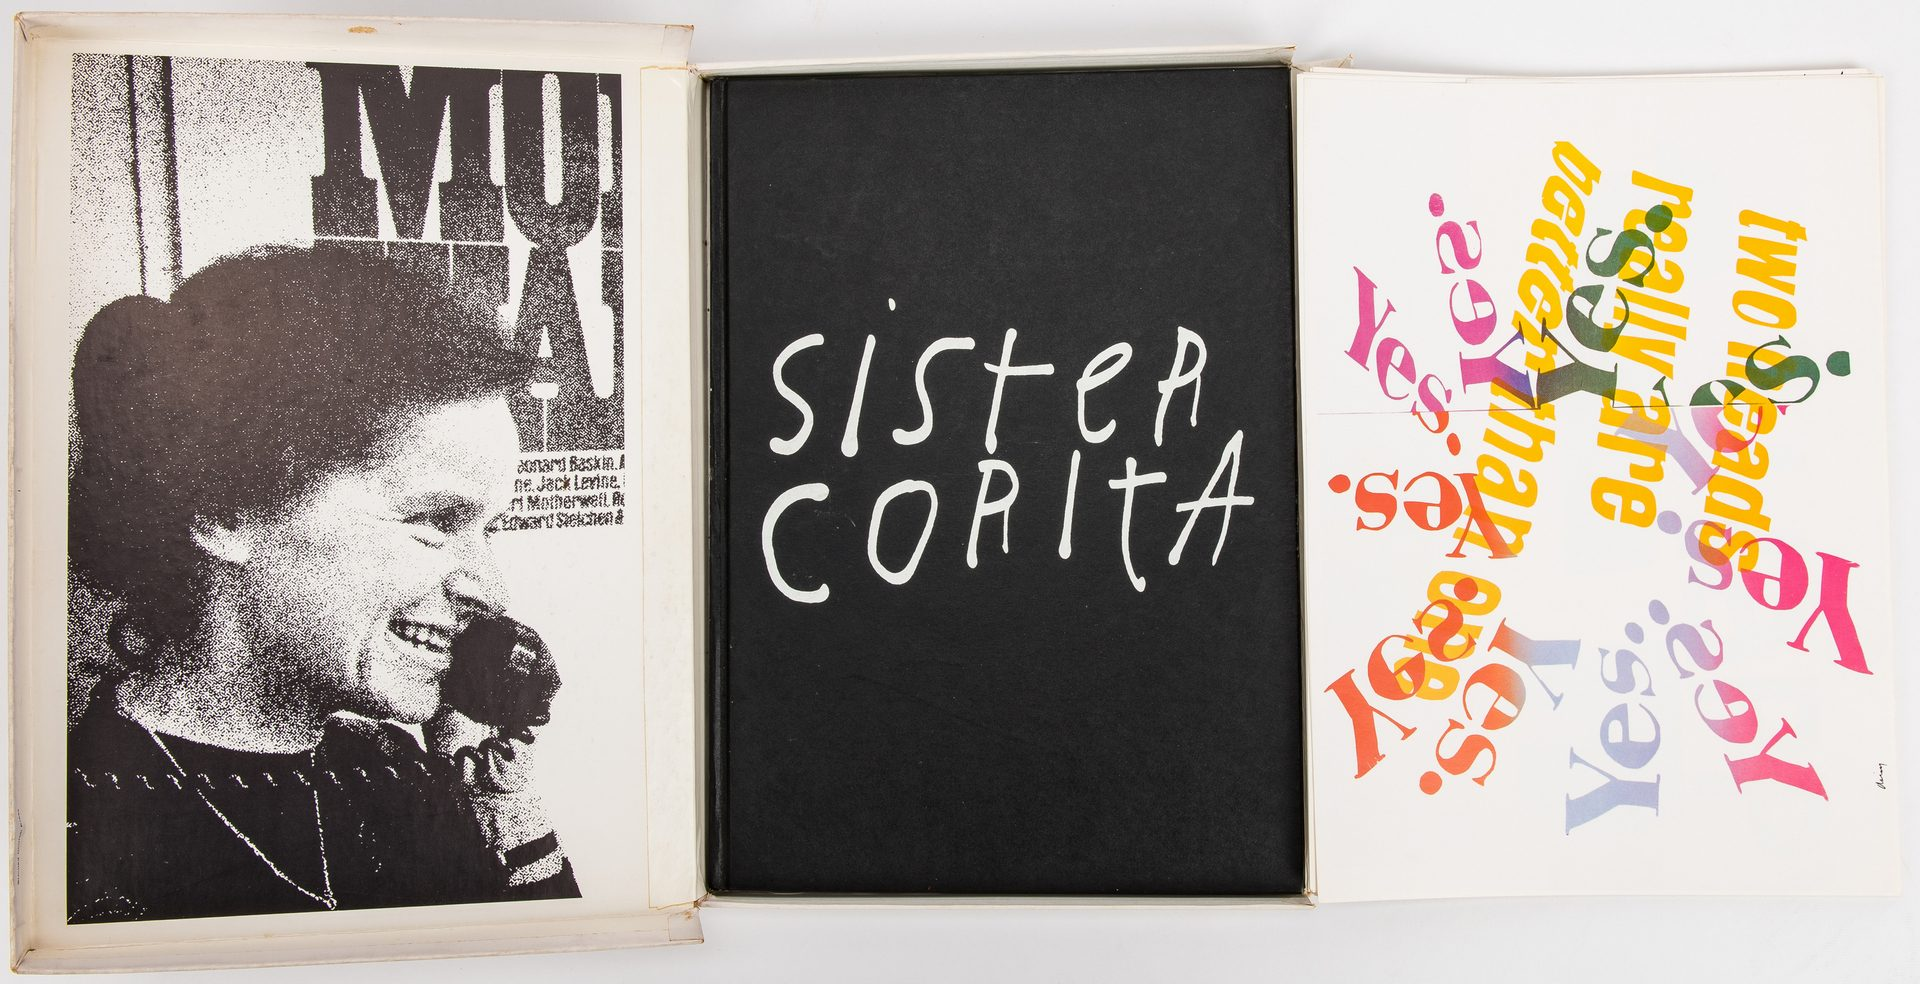 Lot 280: Sister Mary Corita Kent Boxed Set, Book & Prints